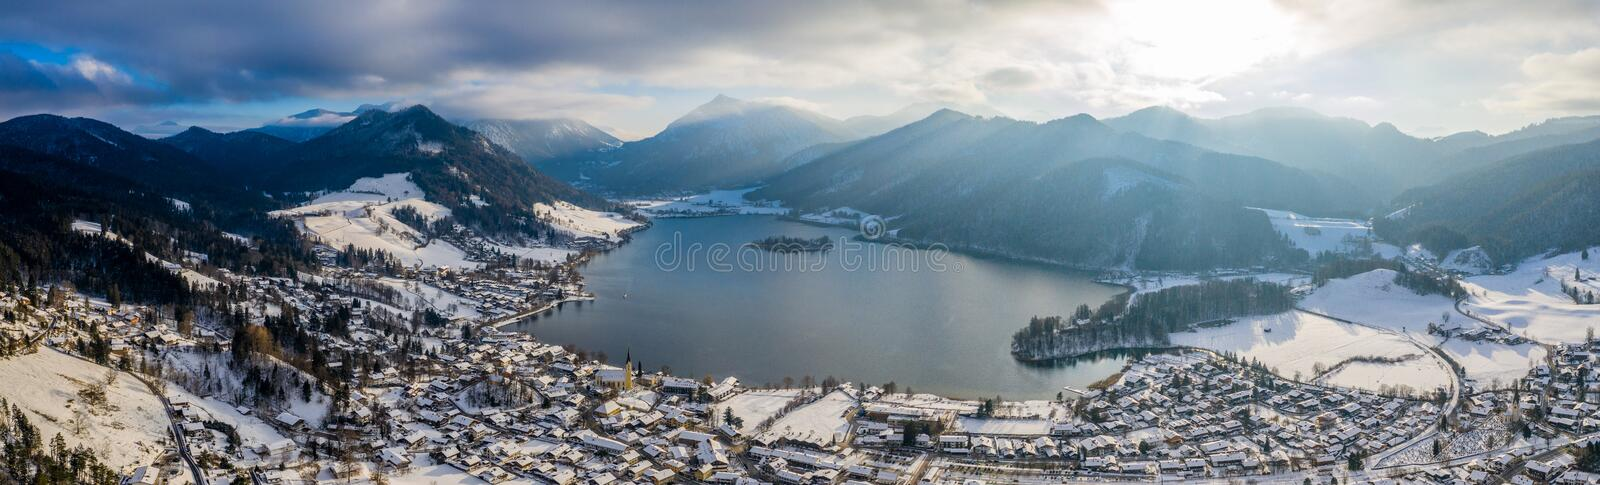 Aerial View See Schliersee-Winter, Deutschland stockfoto